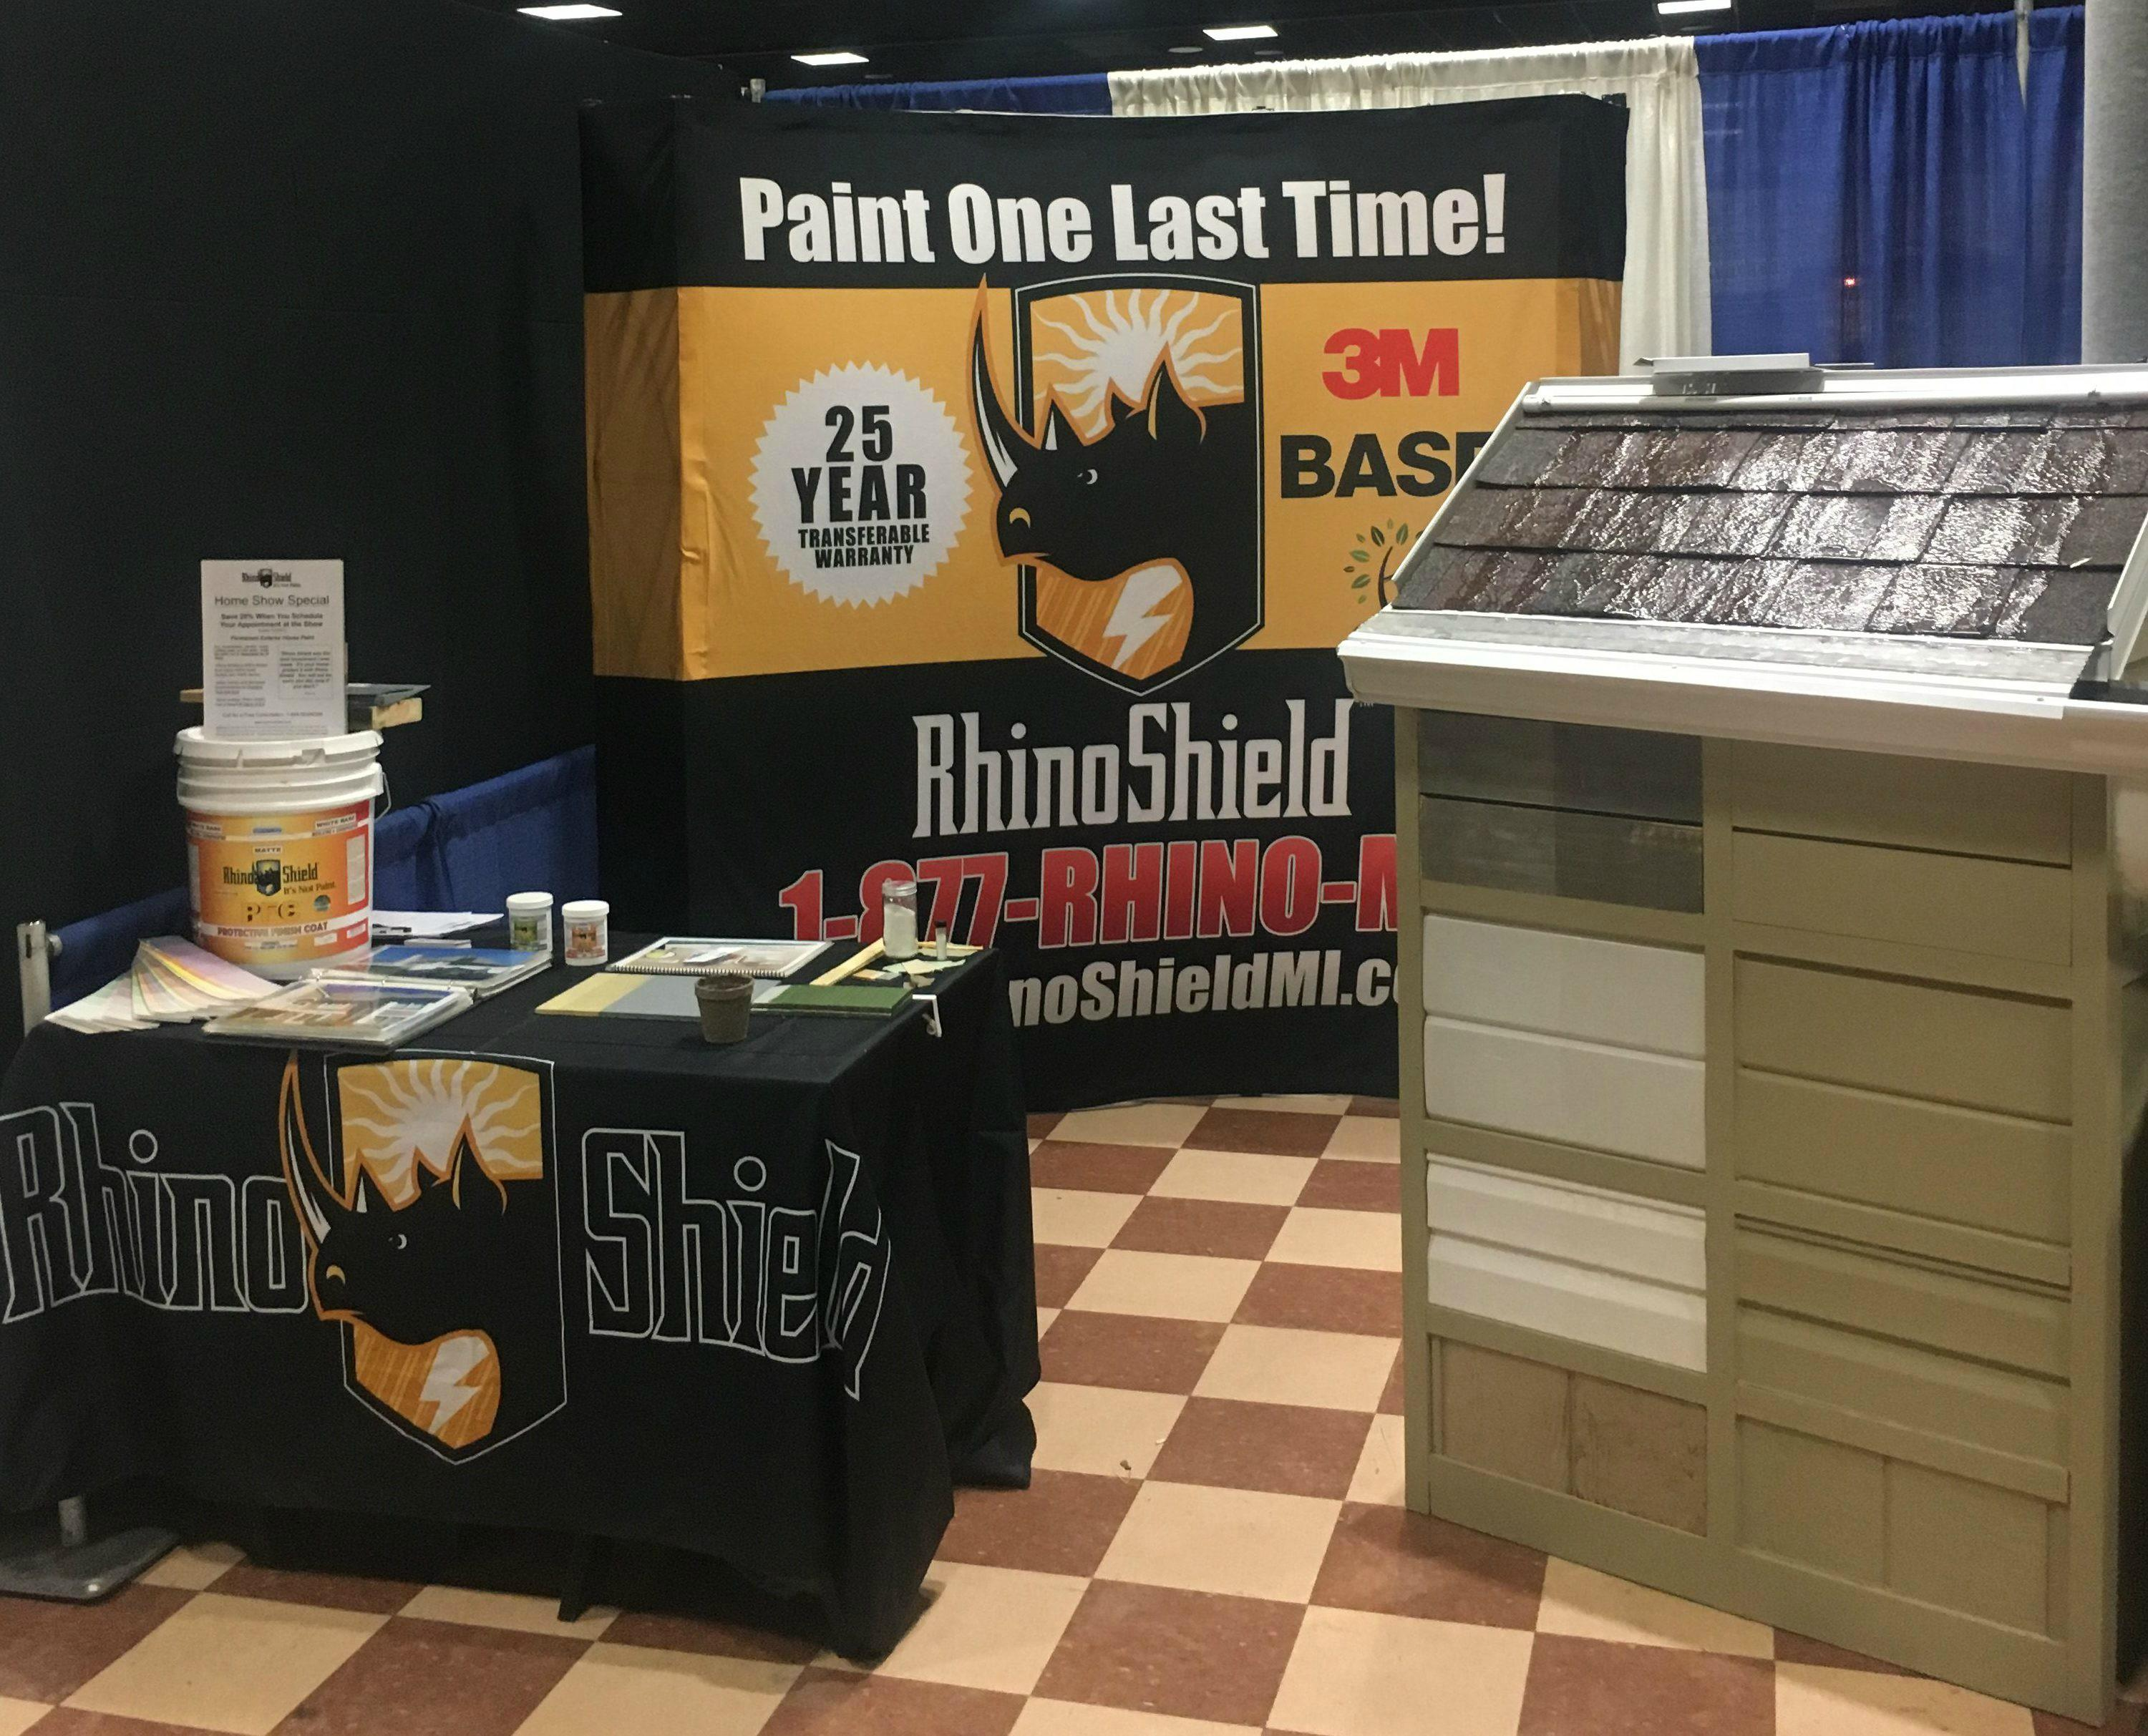 Thanks to everyone who came out to see Rhino Shield House Painters at the Suburban Philadelphia Home Show in Valley...